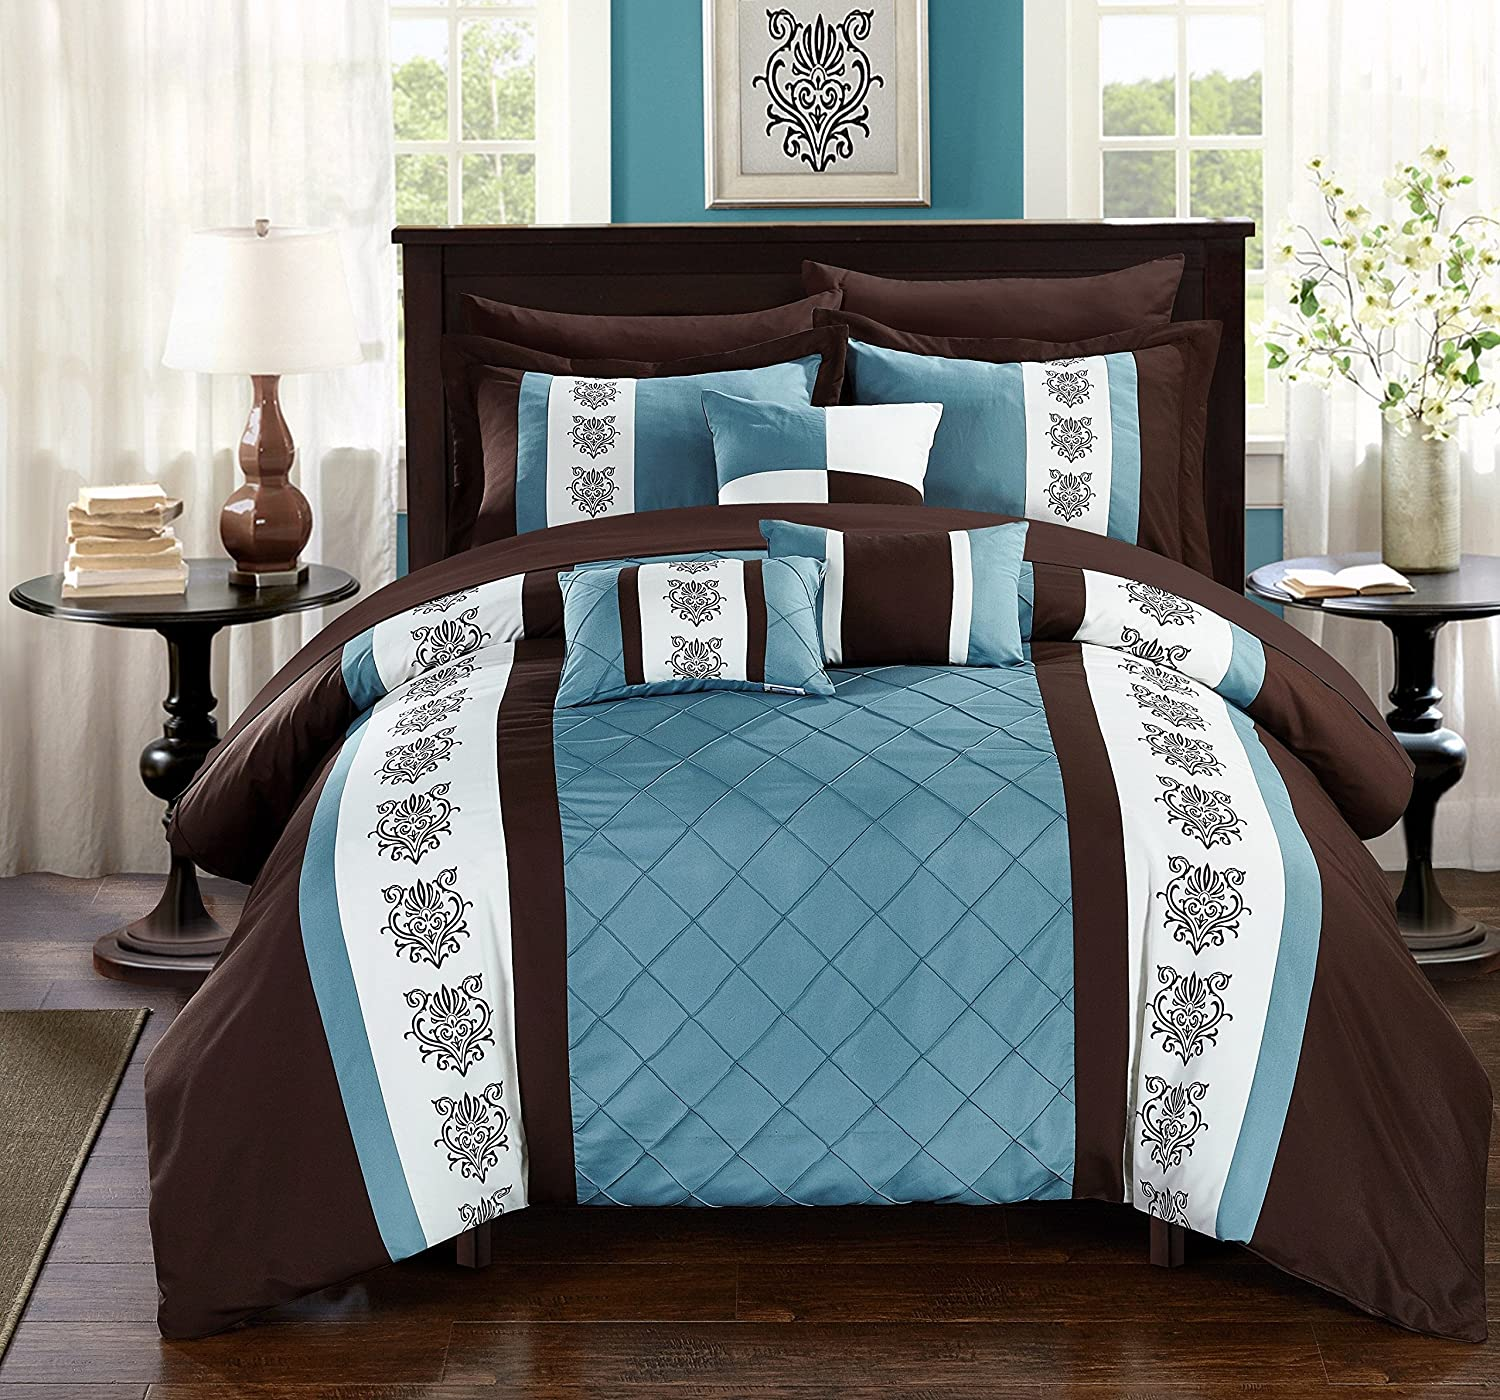 bag brown a andbrown witching king teal set with save together luxury blue at then pc oasis canada splendid bedding colored comforter sets